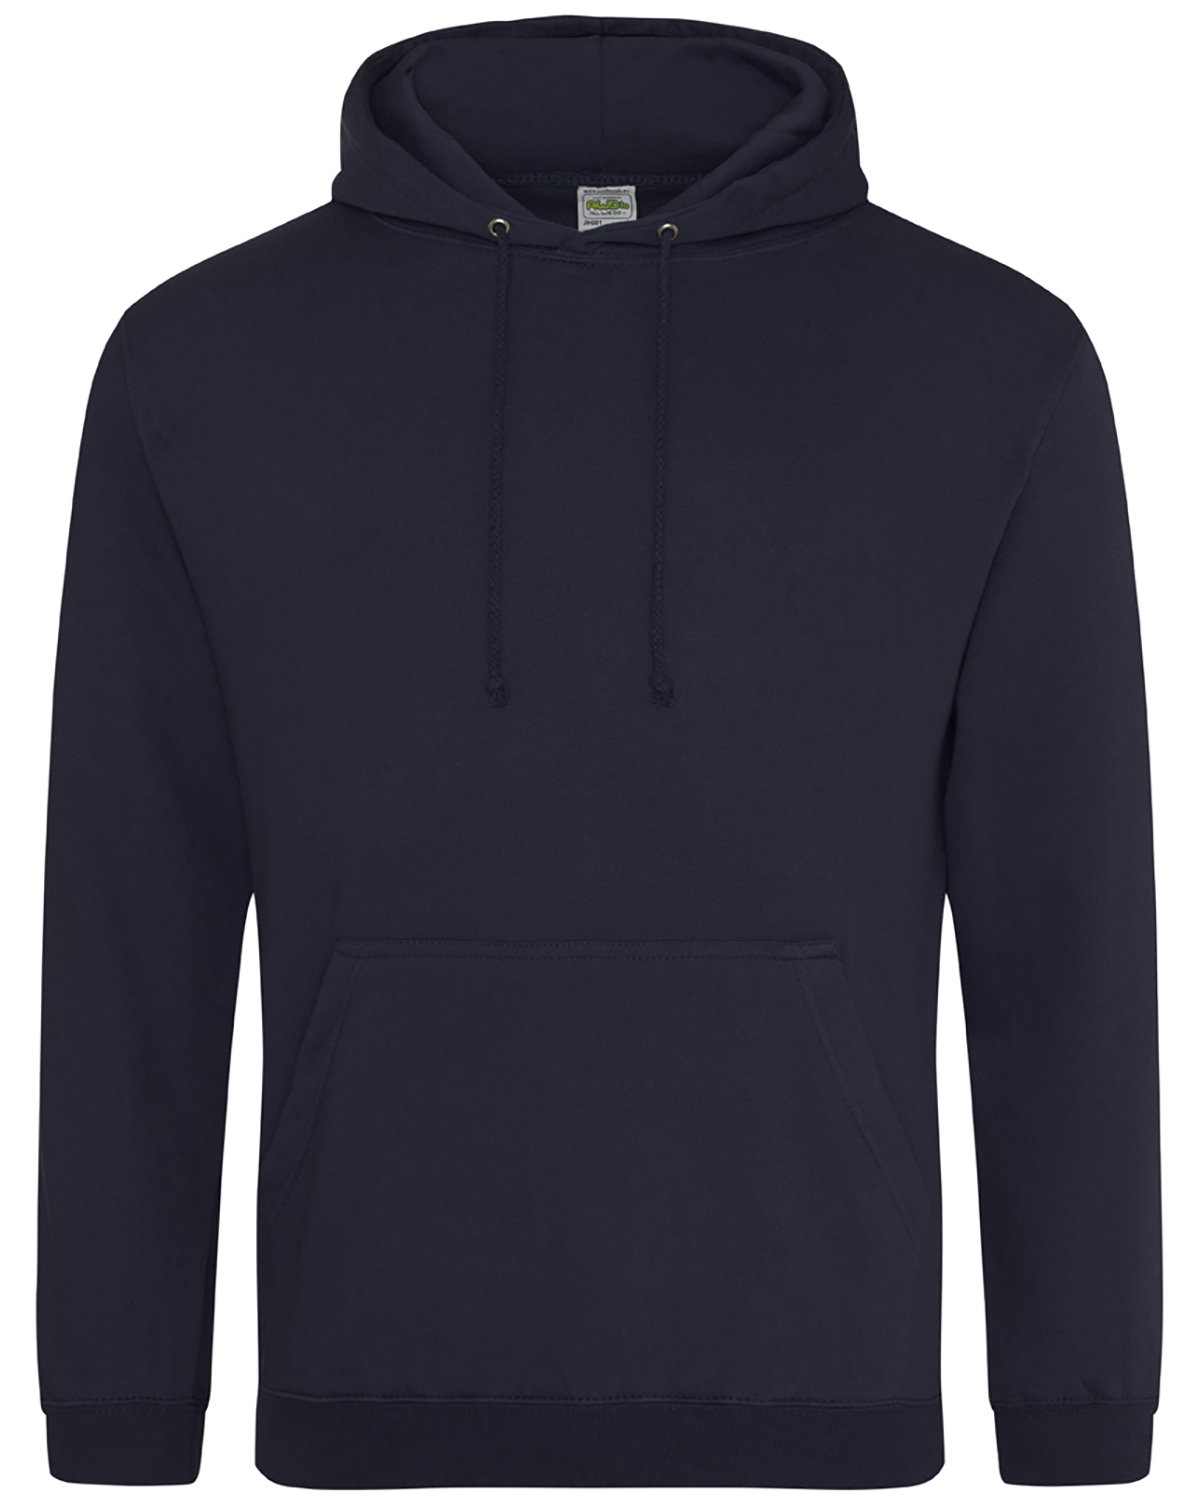 Just Hoods By AWDis Men's 80/20 Midweight College Hooded Sweatshirt FRENCH NAVY